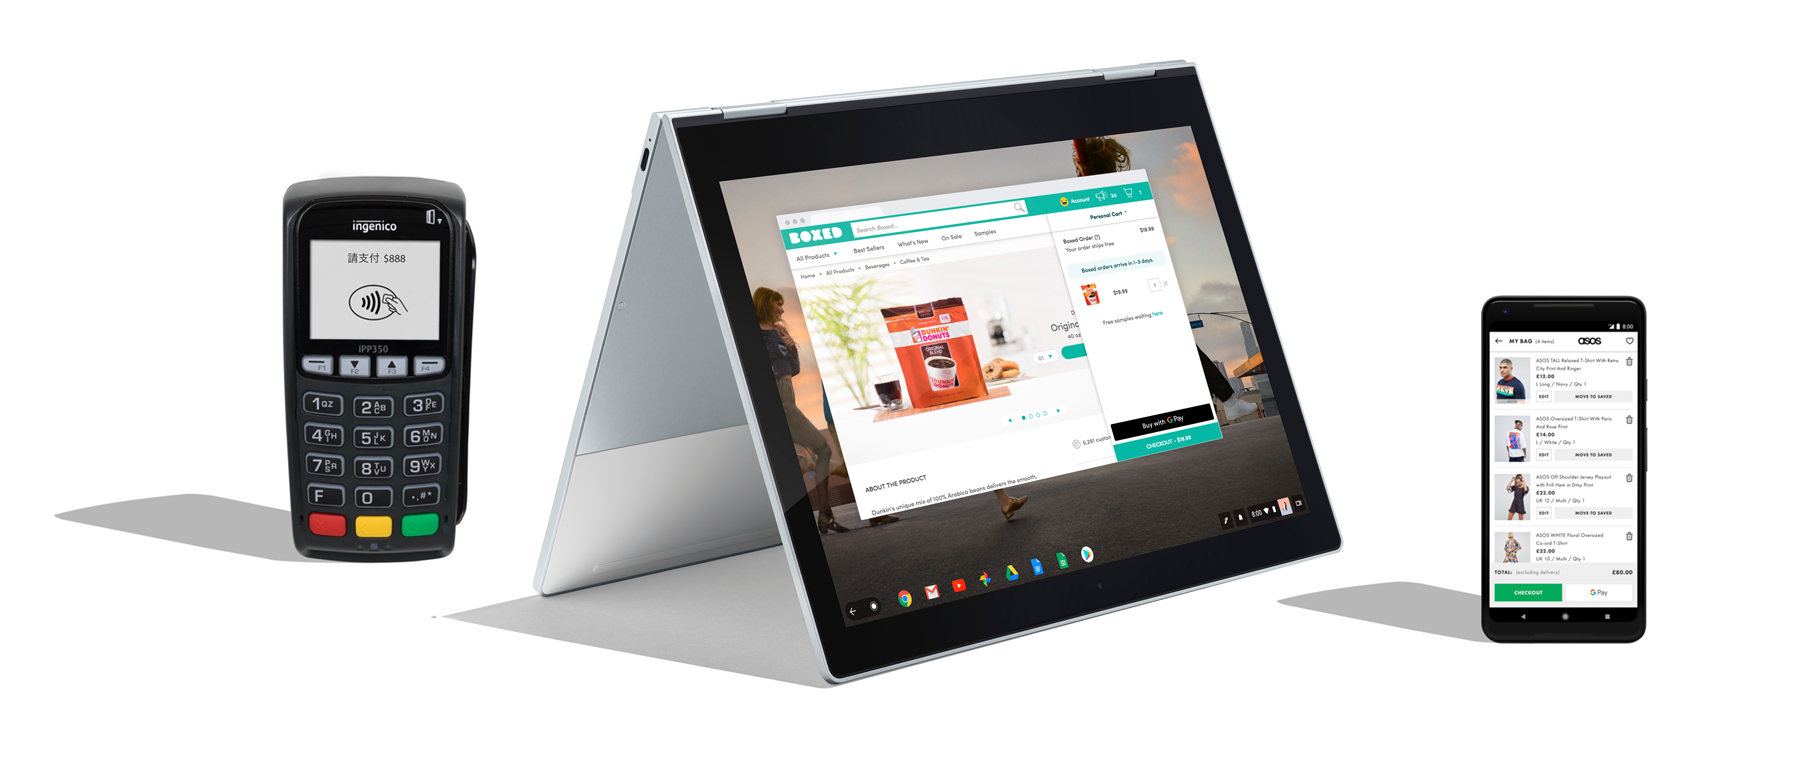 Payment Terminal, Wear OS by Google, Google Pixelbook, Google Home and Google Pixel 2